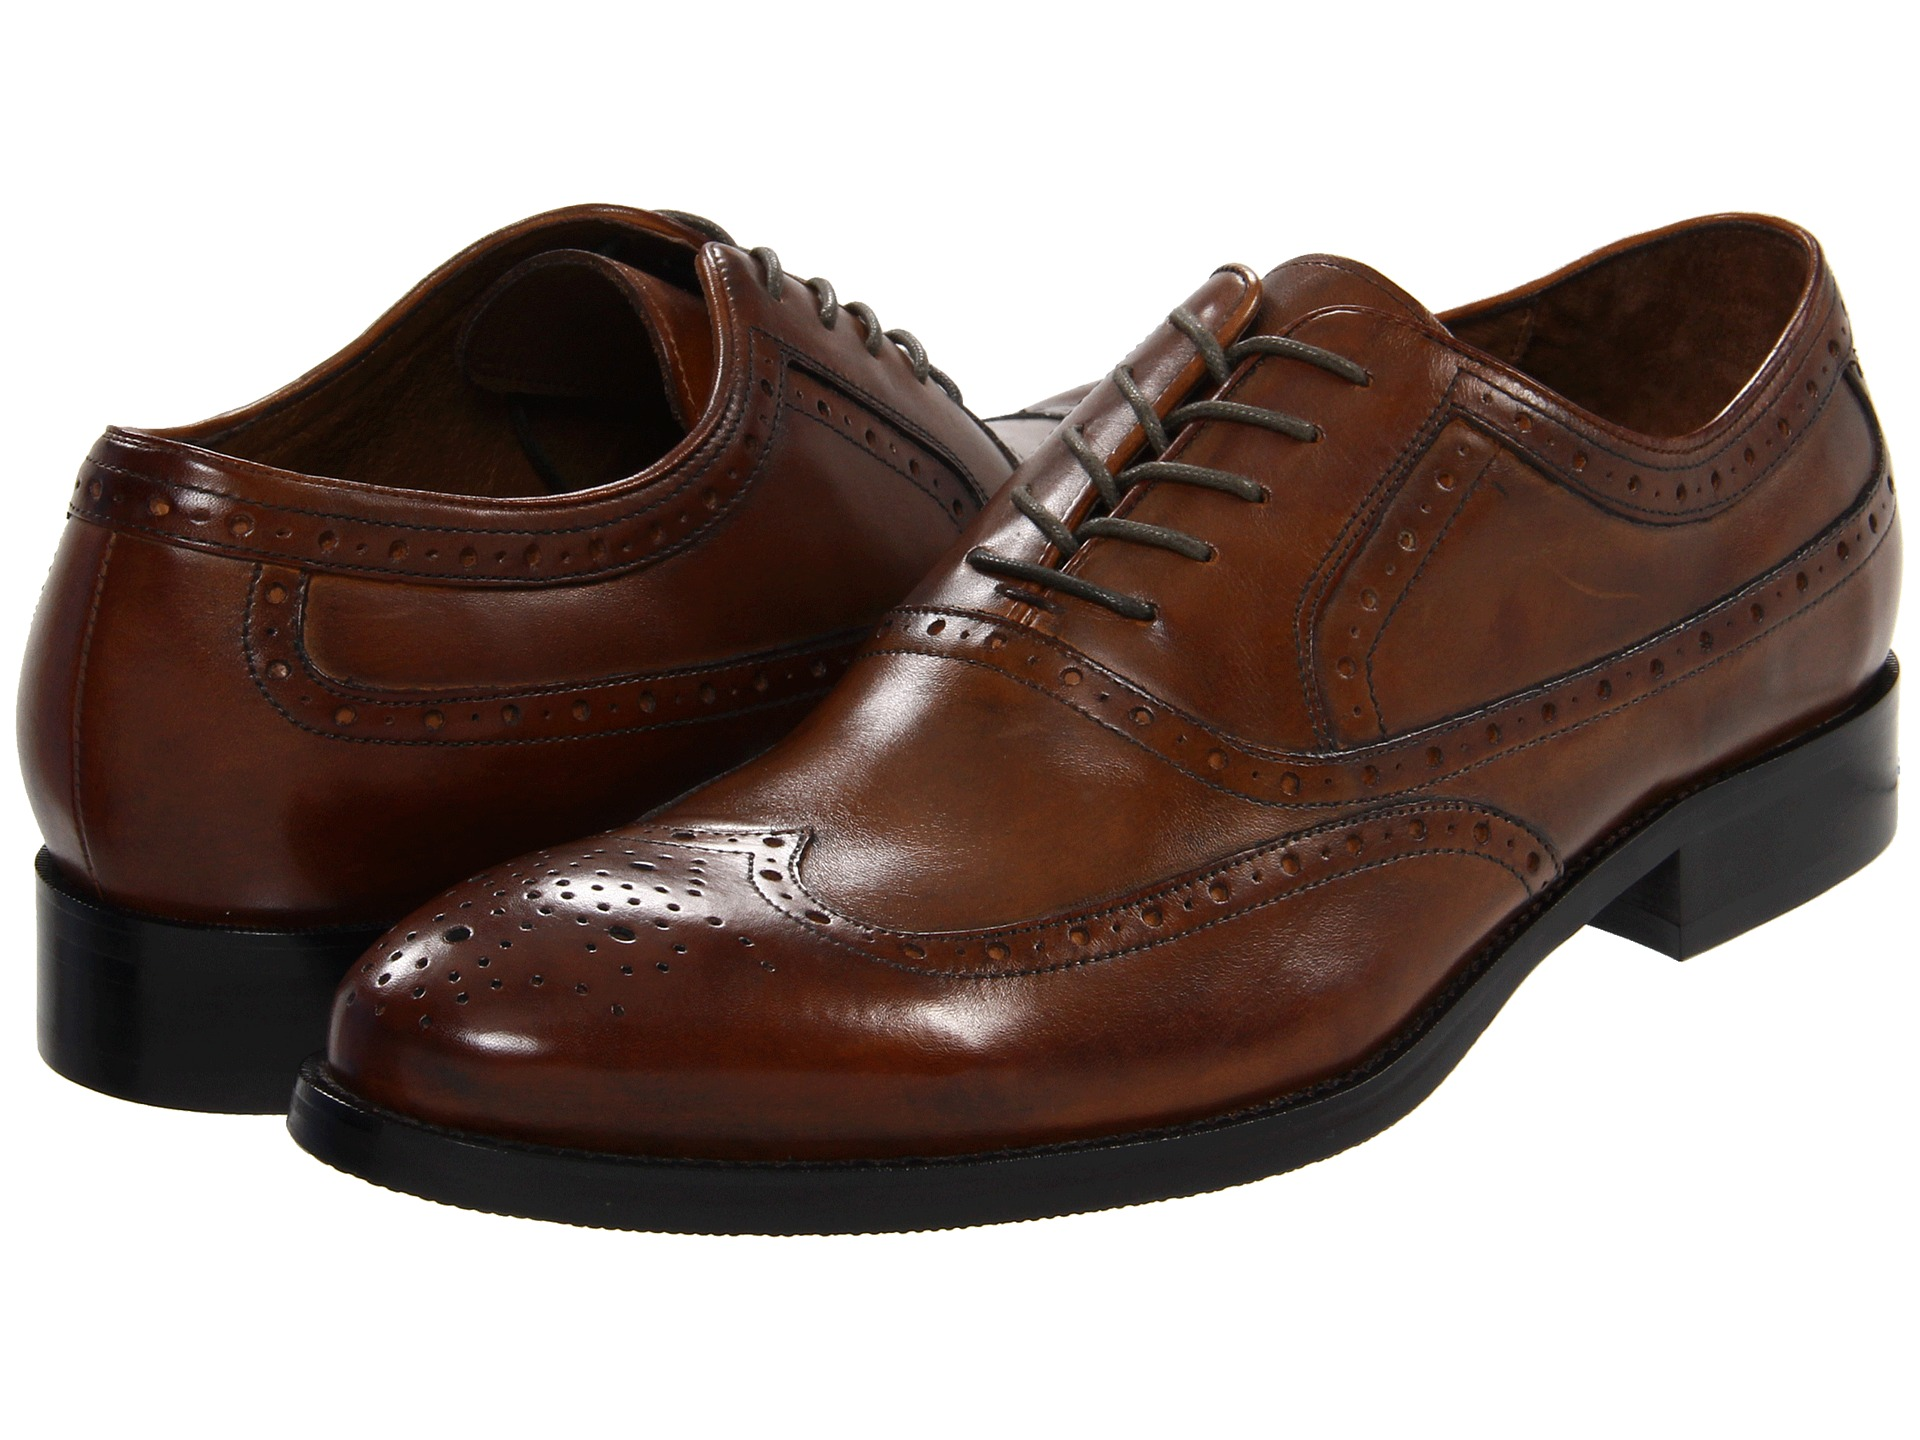 Johnston & Murphy is a Men's & Women's Shoes store that offers high-priced, dress shoes. The 6 stores below sell similar products and have at least 1 location within 20 miles of Palo Alto, California.